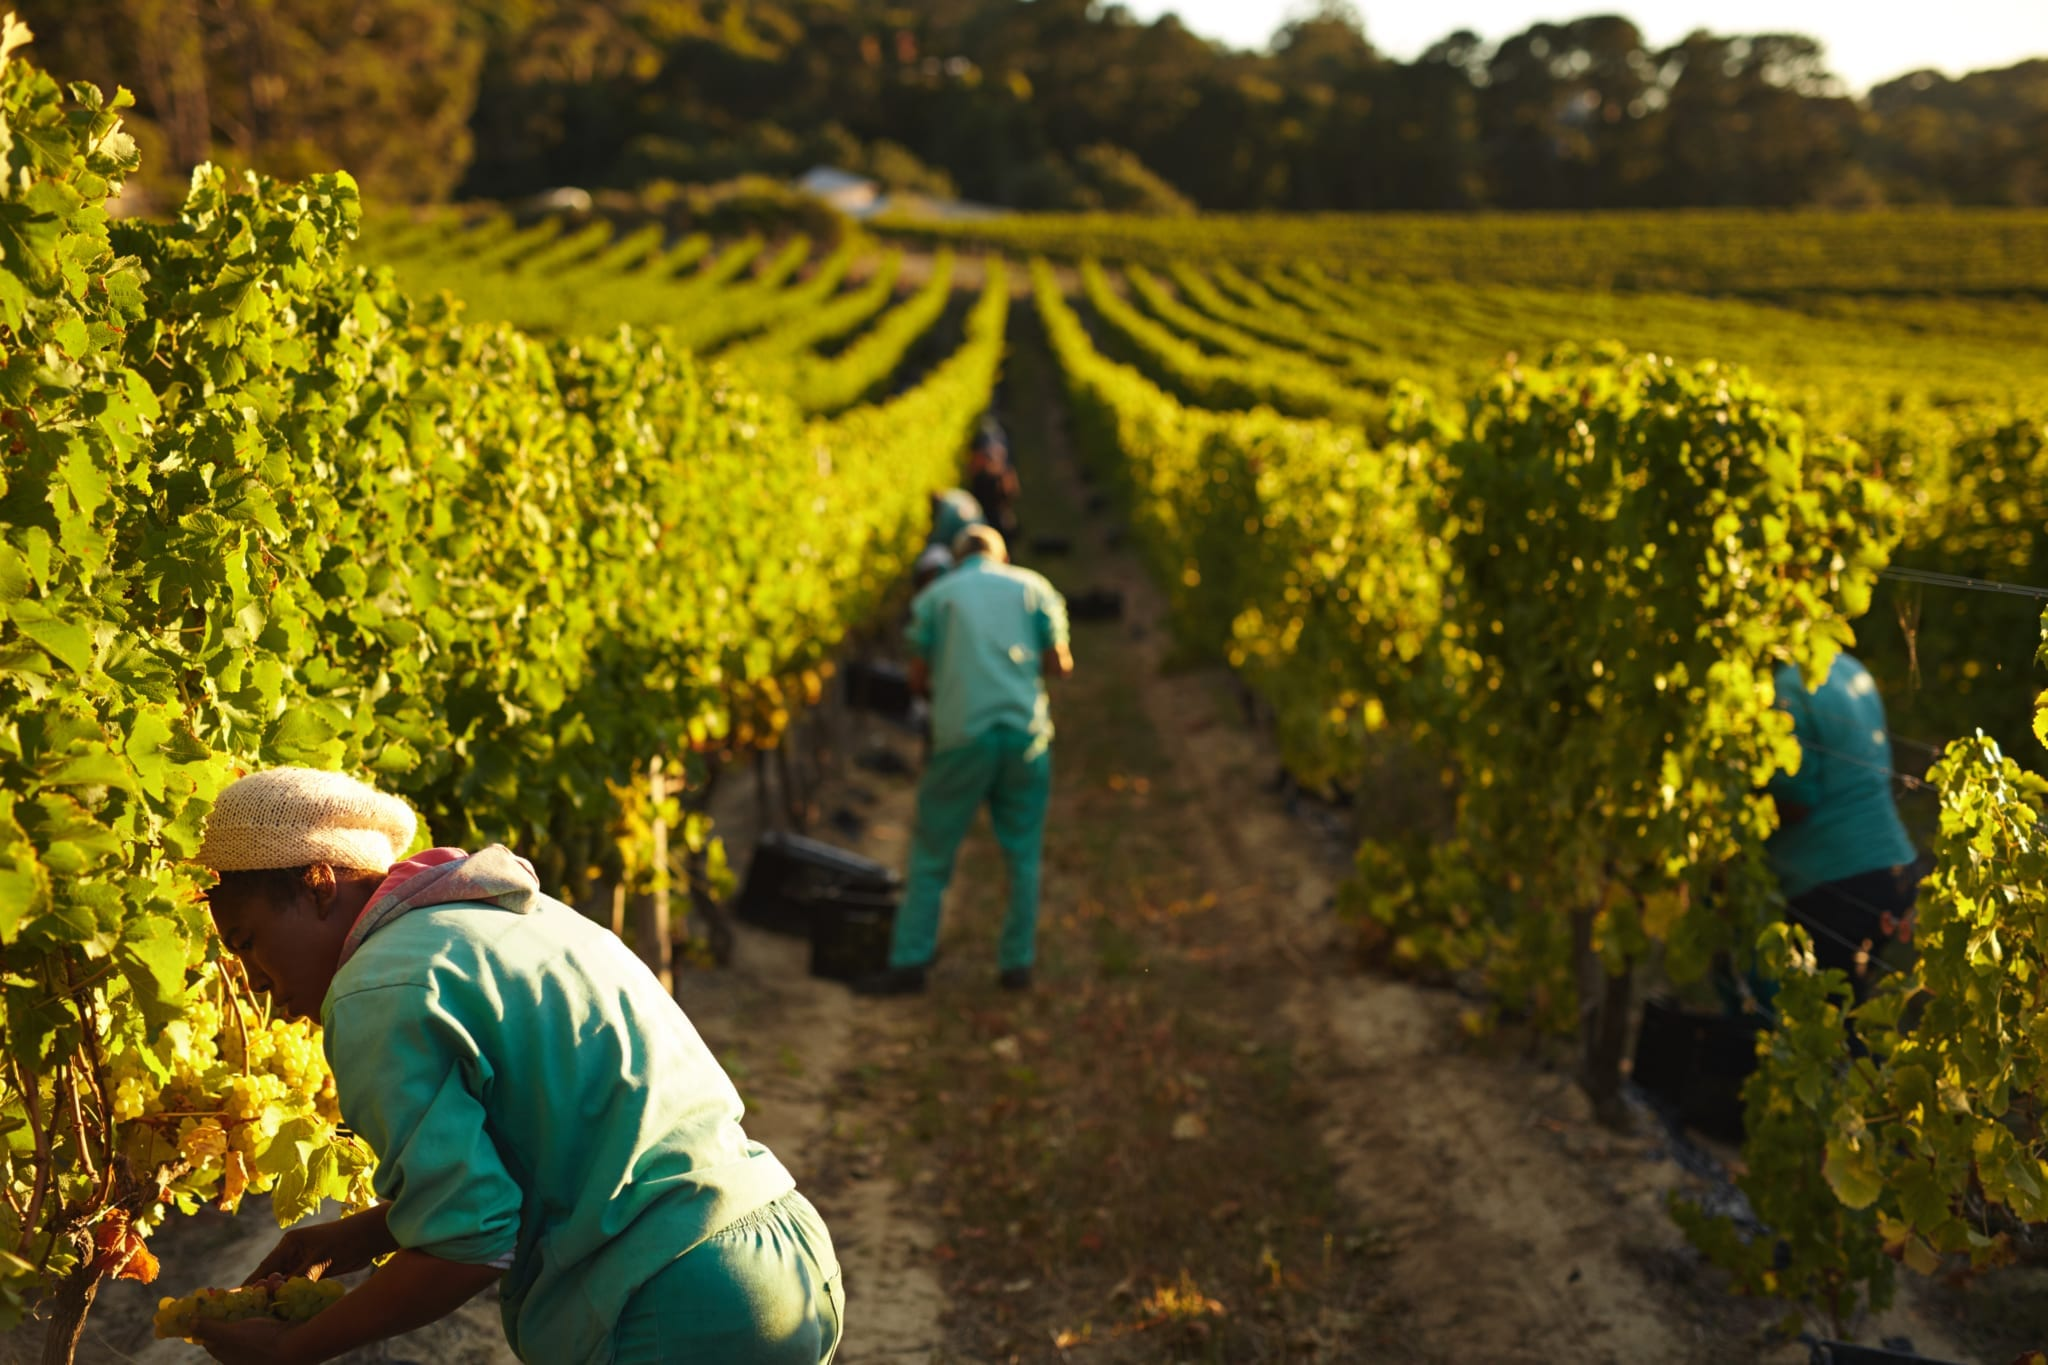 Grape pickers working in field of grape vines. Farm workers harvesting grapes in vineyard for making wine.